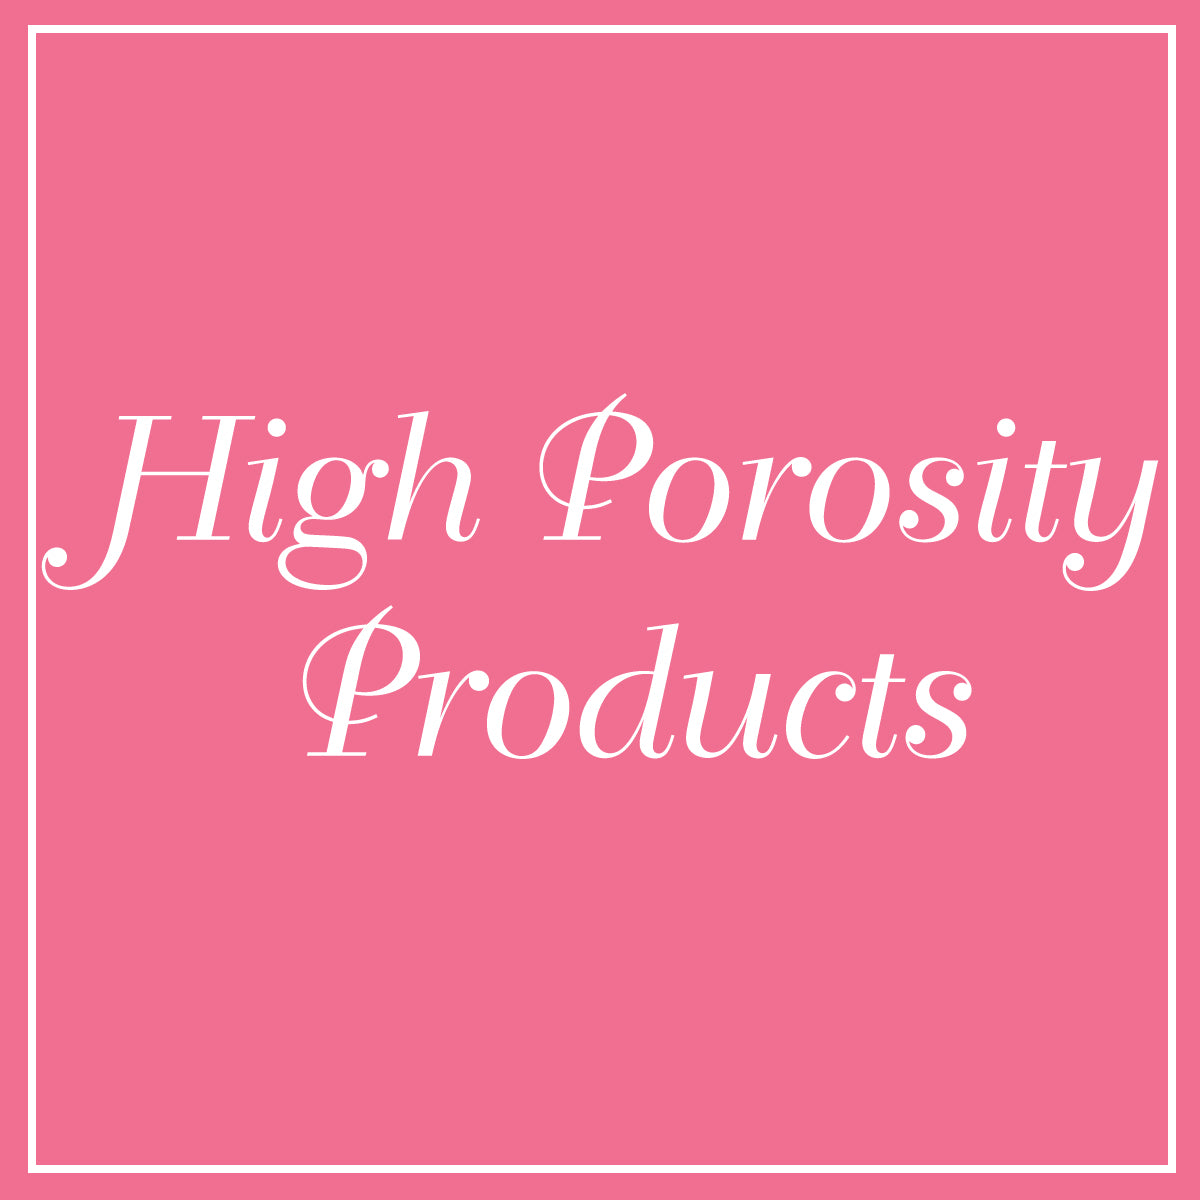 Products for High Porosity Hair